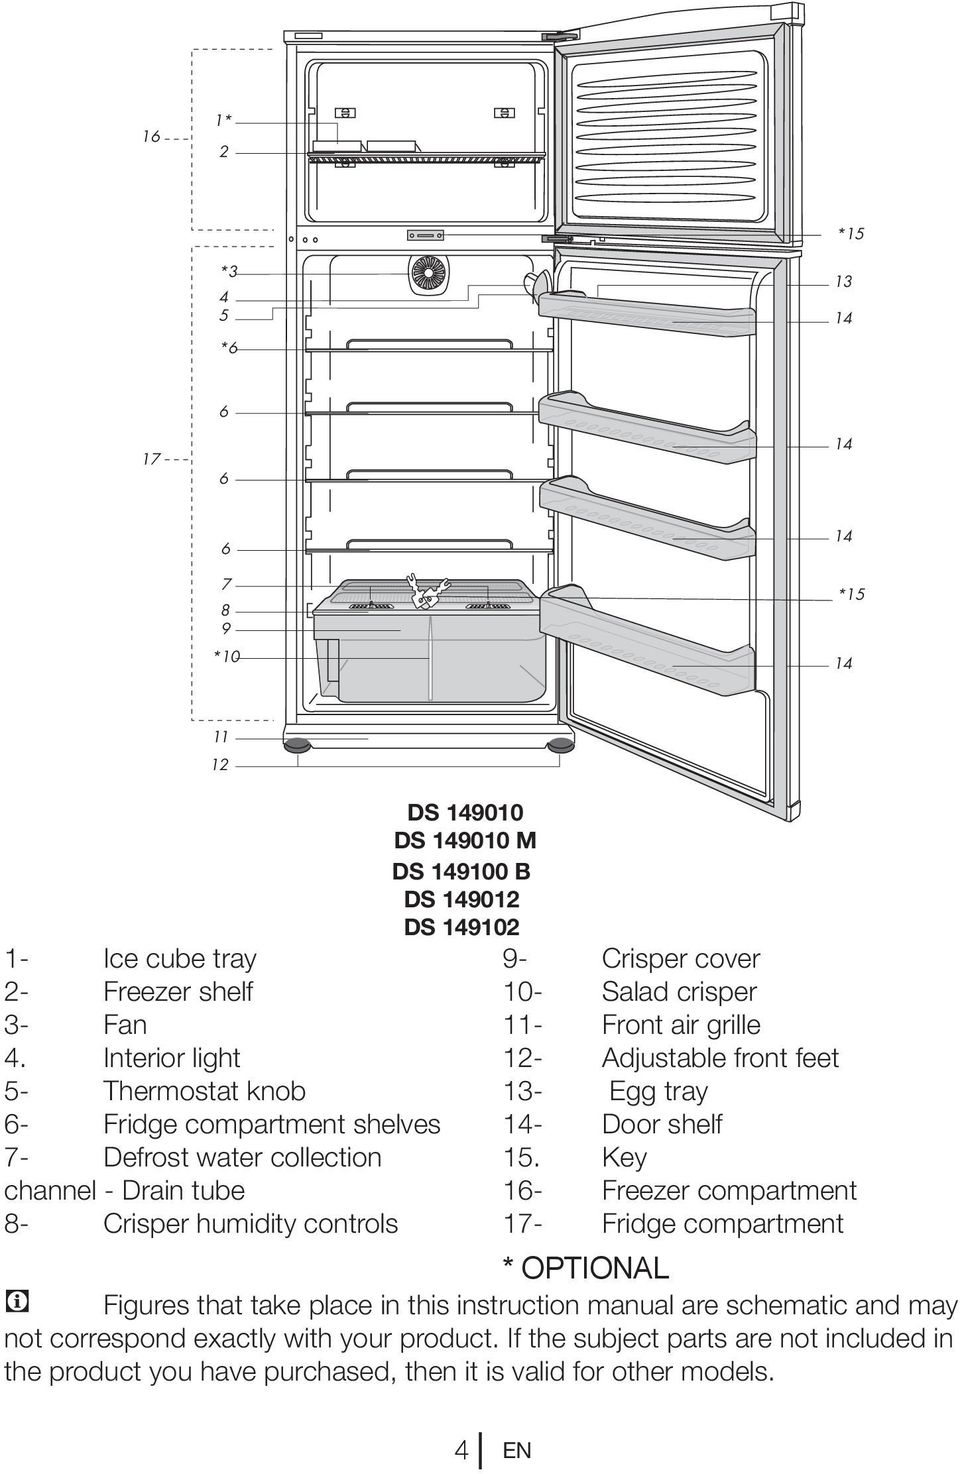 DS 149012 DS 149102 9- Crisper cover 10- Salad crisper 11- Front air grille 12- Adjustable front feet 13- Egg tray 14- Door shelf 15.